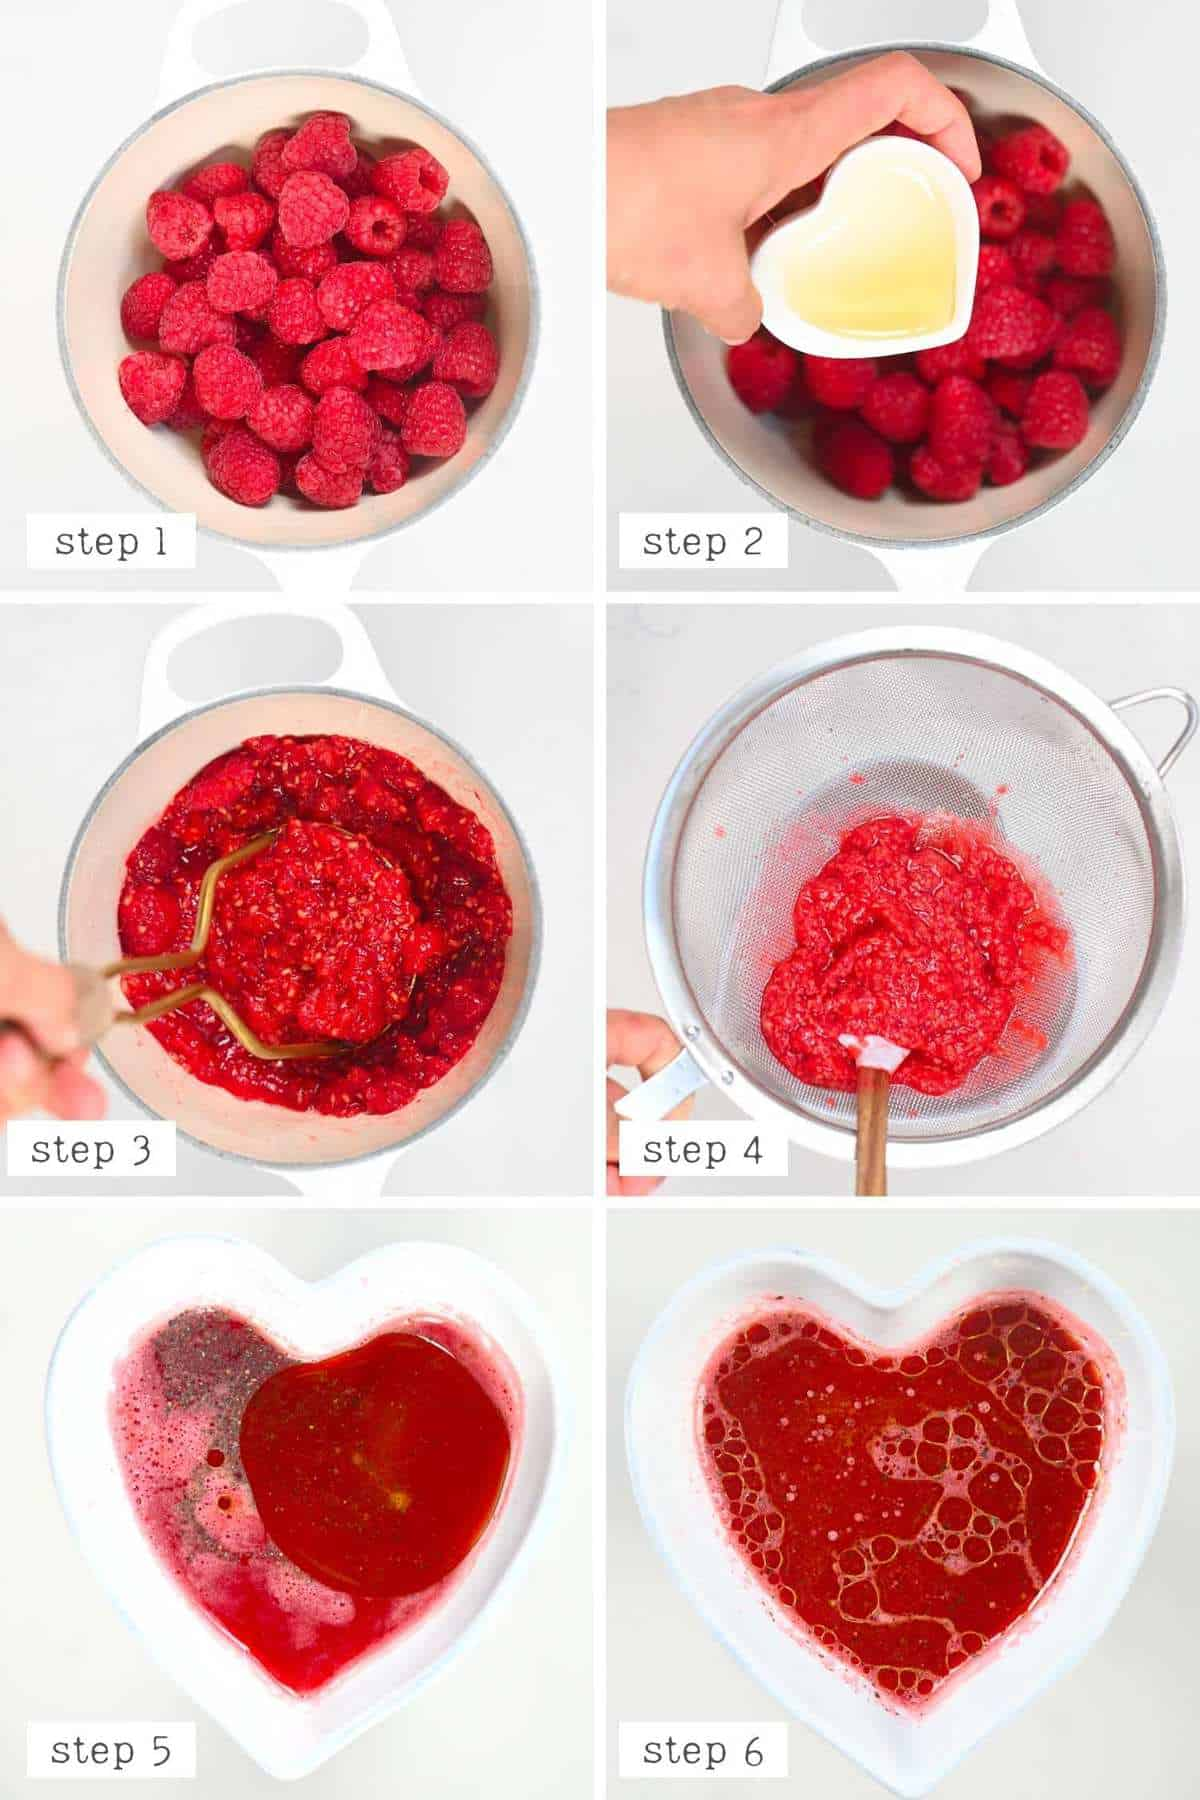 Mixing steps for Raspberry salad dressing